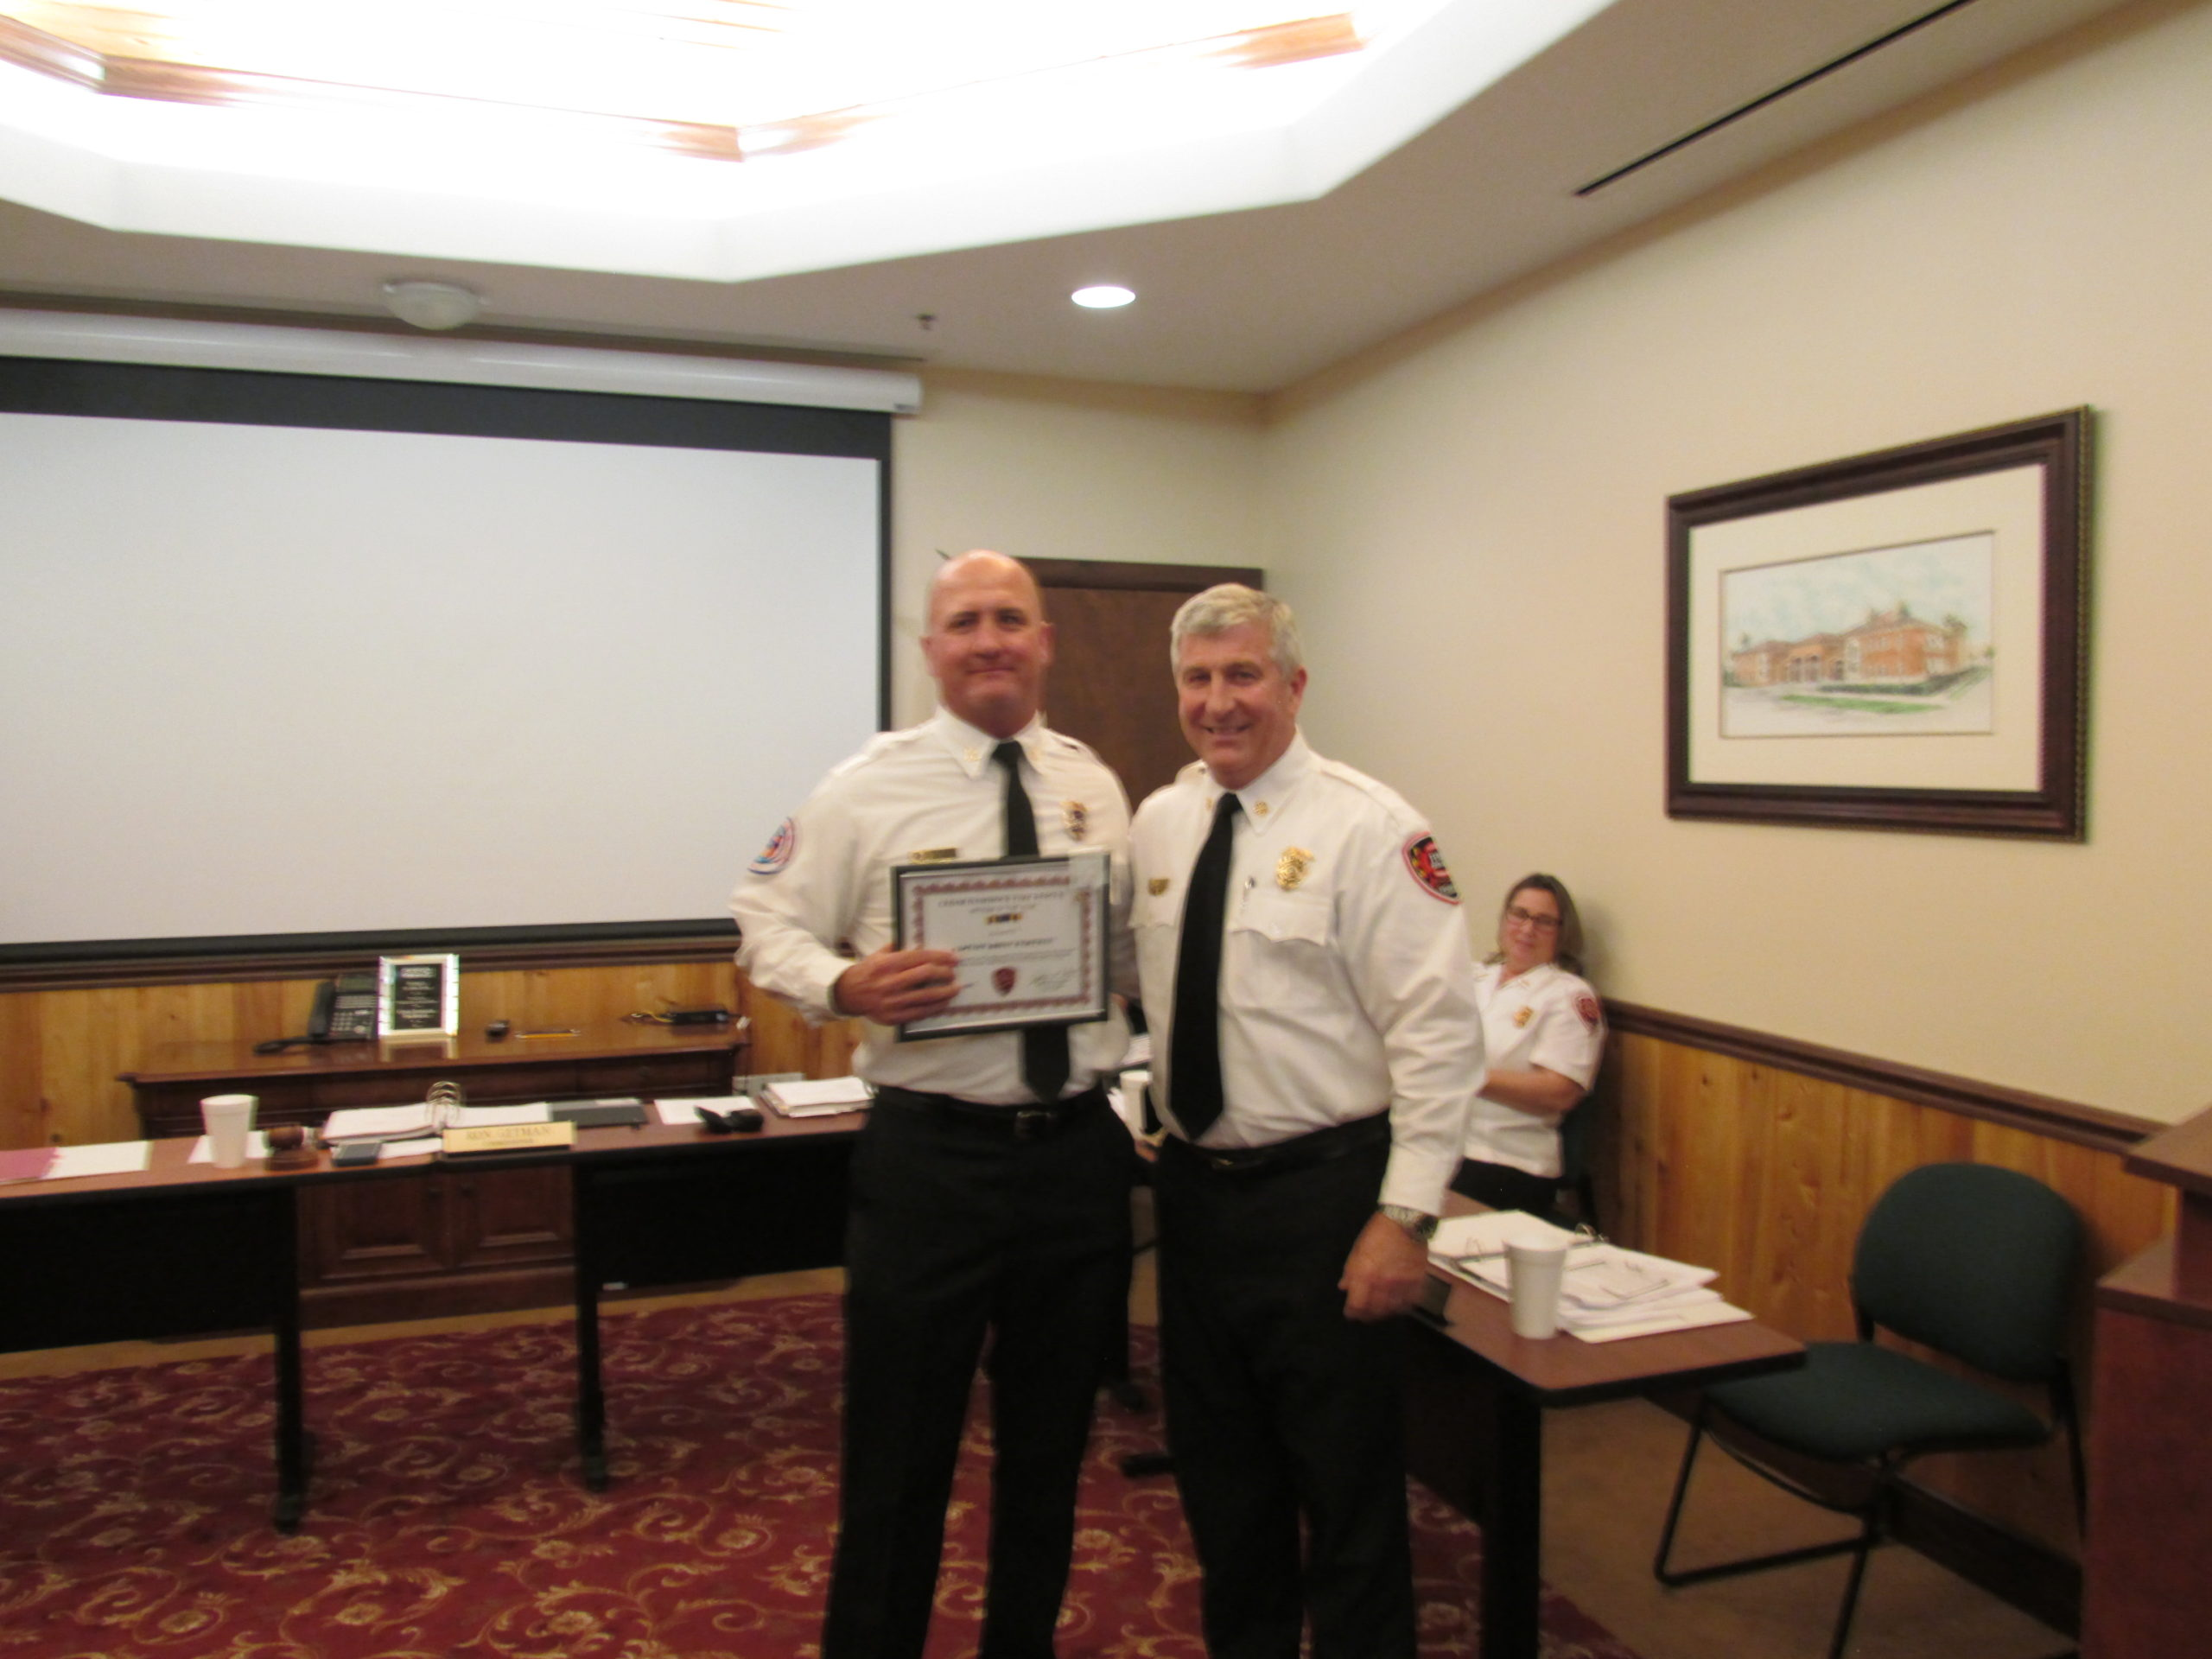 captain brian bartman receiving officer of the year award from chief hoyle